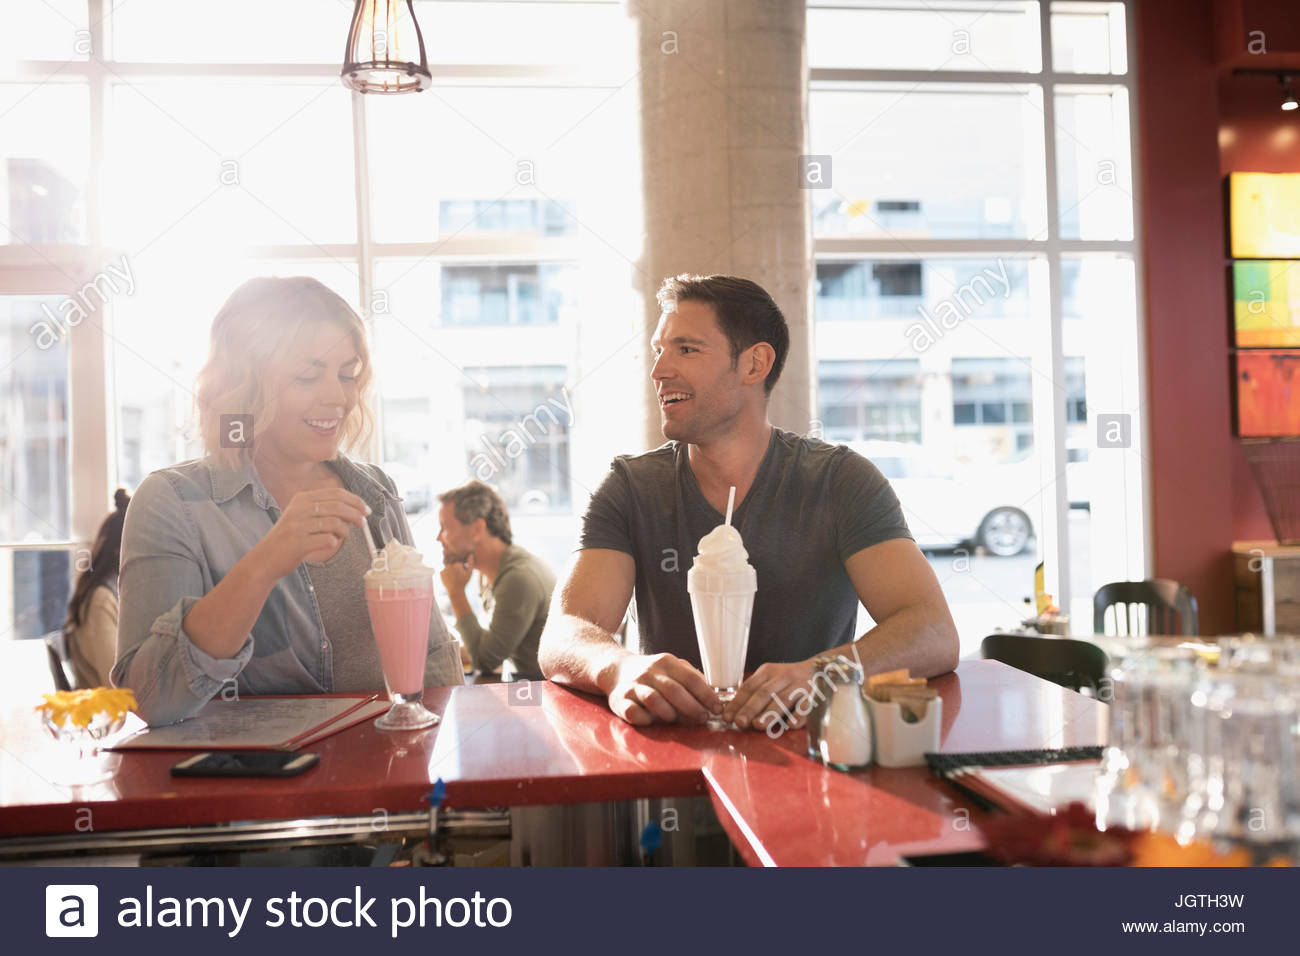 Young couple drinking milkshakes at diner counter - Stock Image